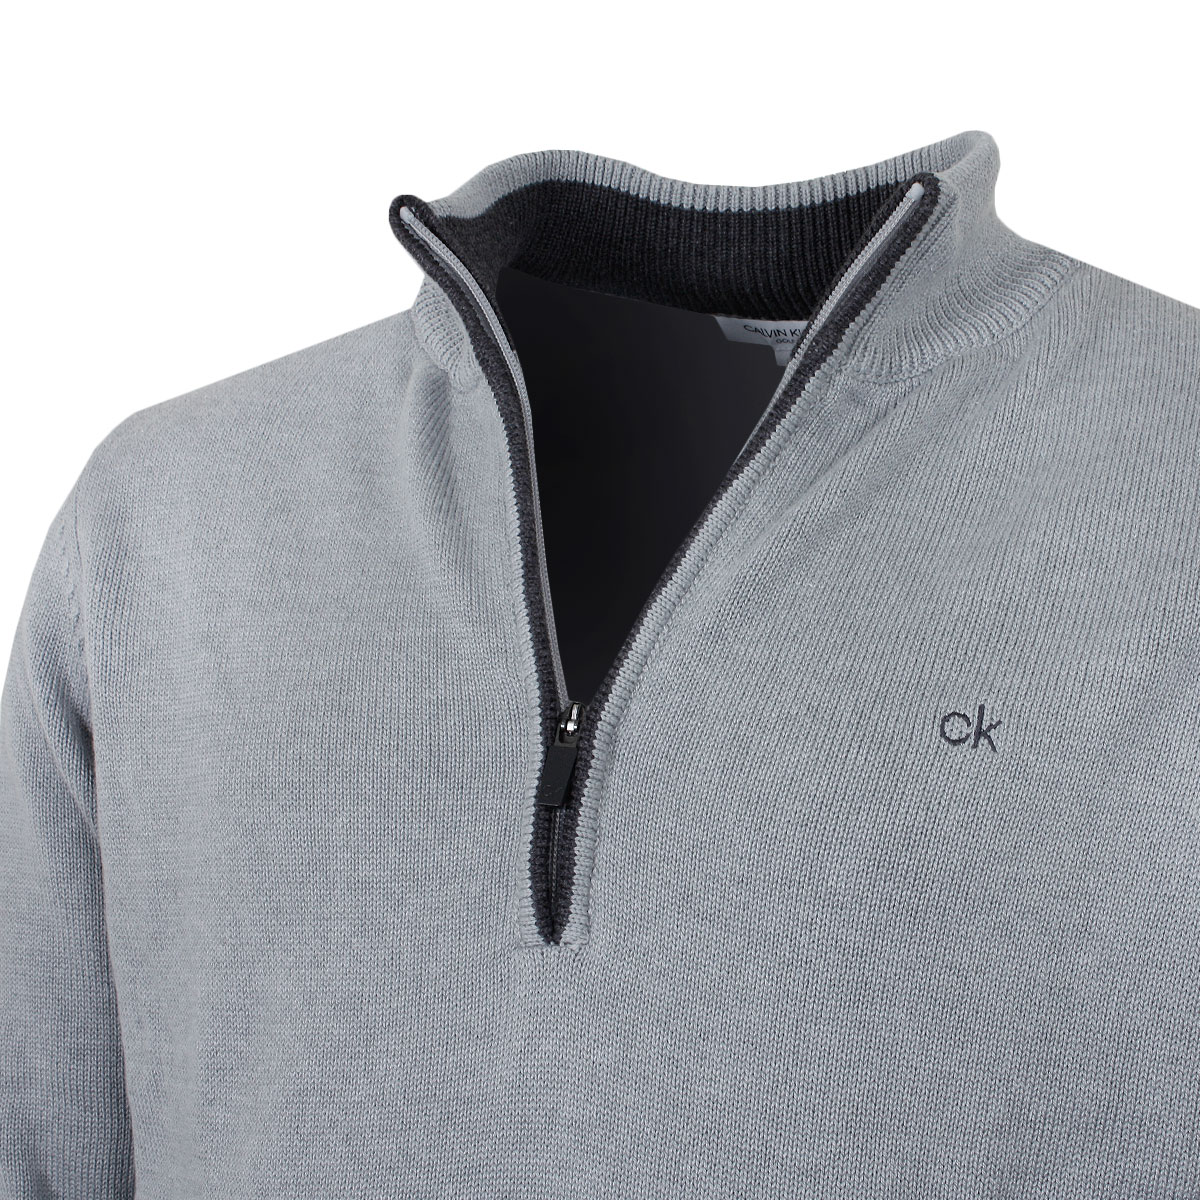 Calvin-Klein-Golf-Mens-2019-Chunky-Cotton-1-2-Zip-Golf-Top-Sweater-37-OFF-RRP thumbnail 51